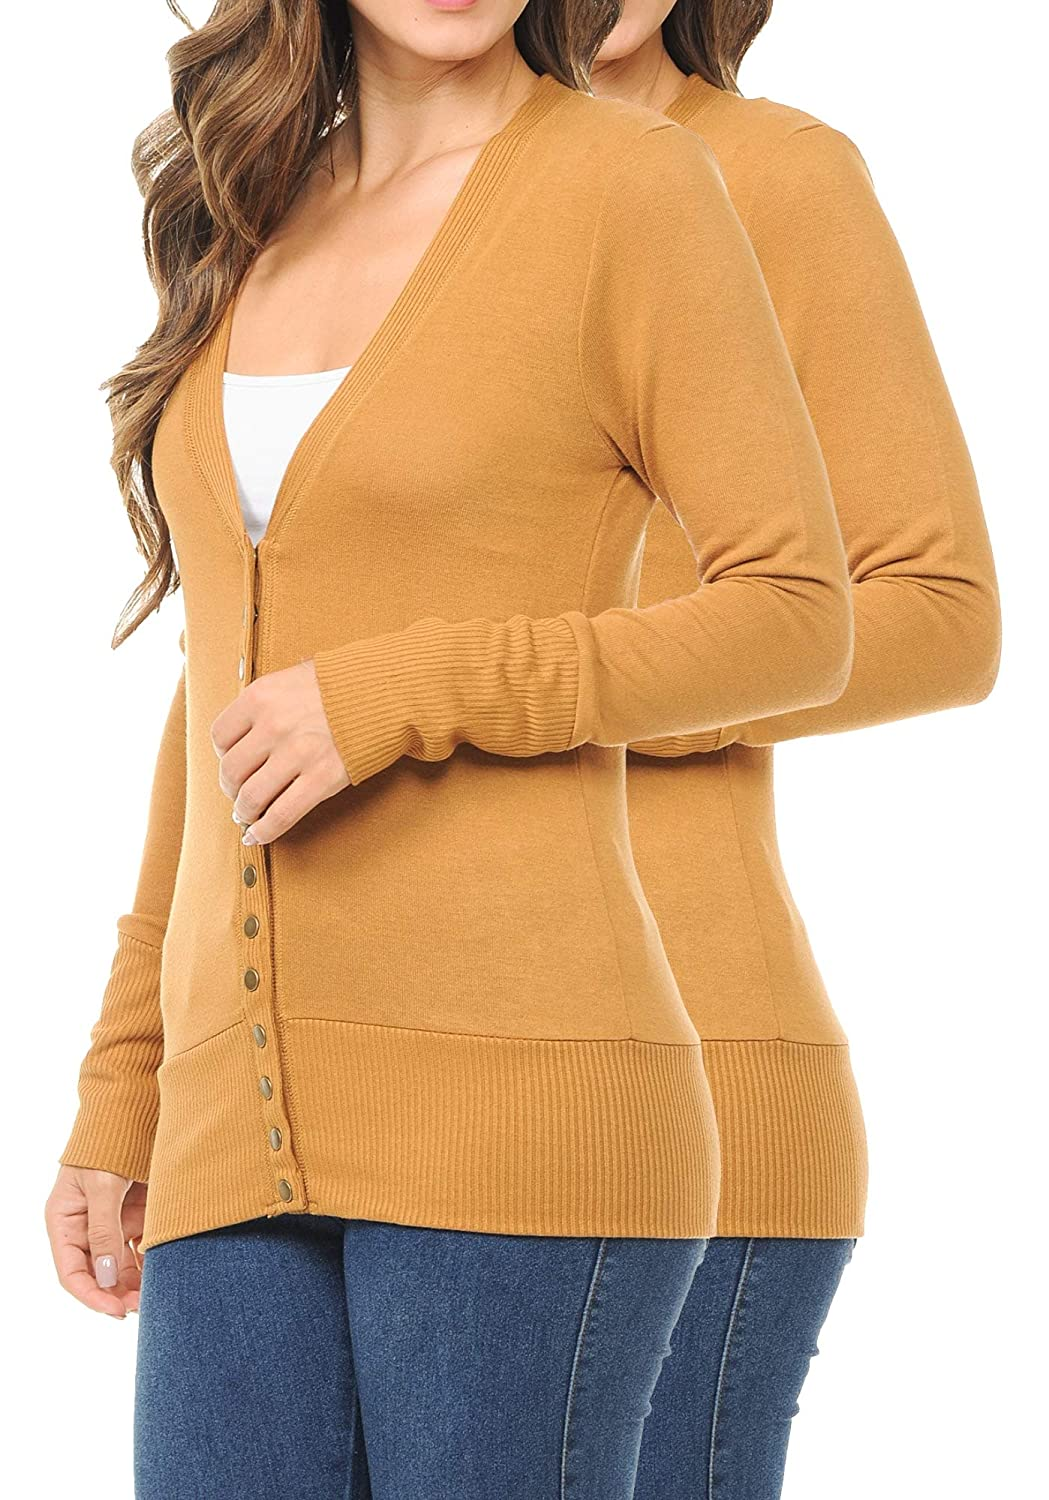 ClothingAve Womens Snap Button Sweater Cardigan with Ribbed Detail